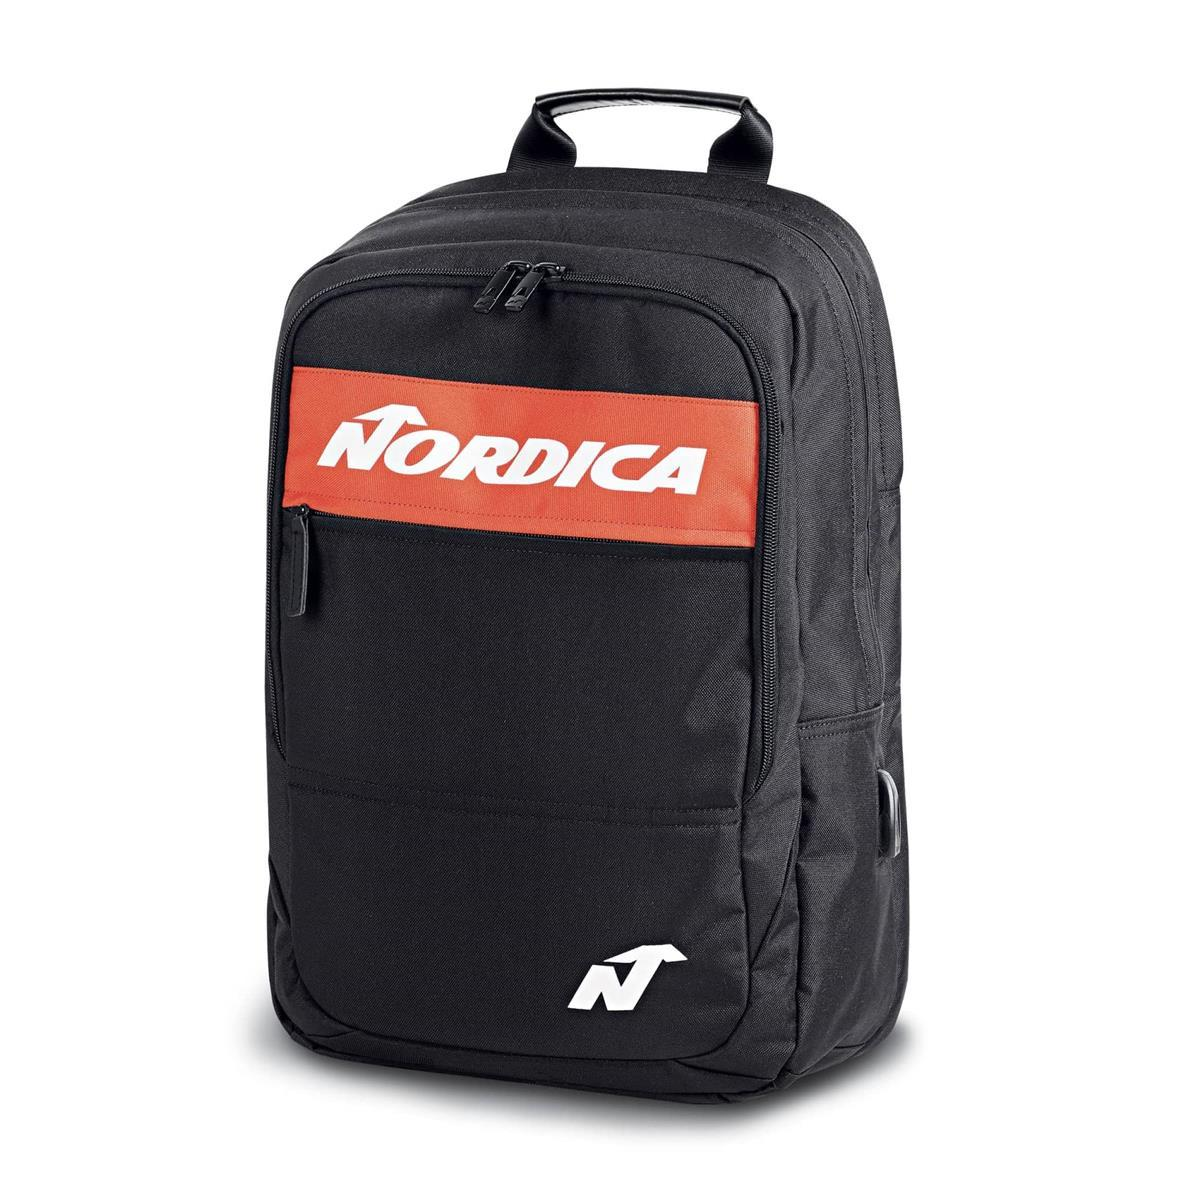 Nordica Business Backpack